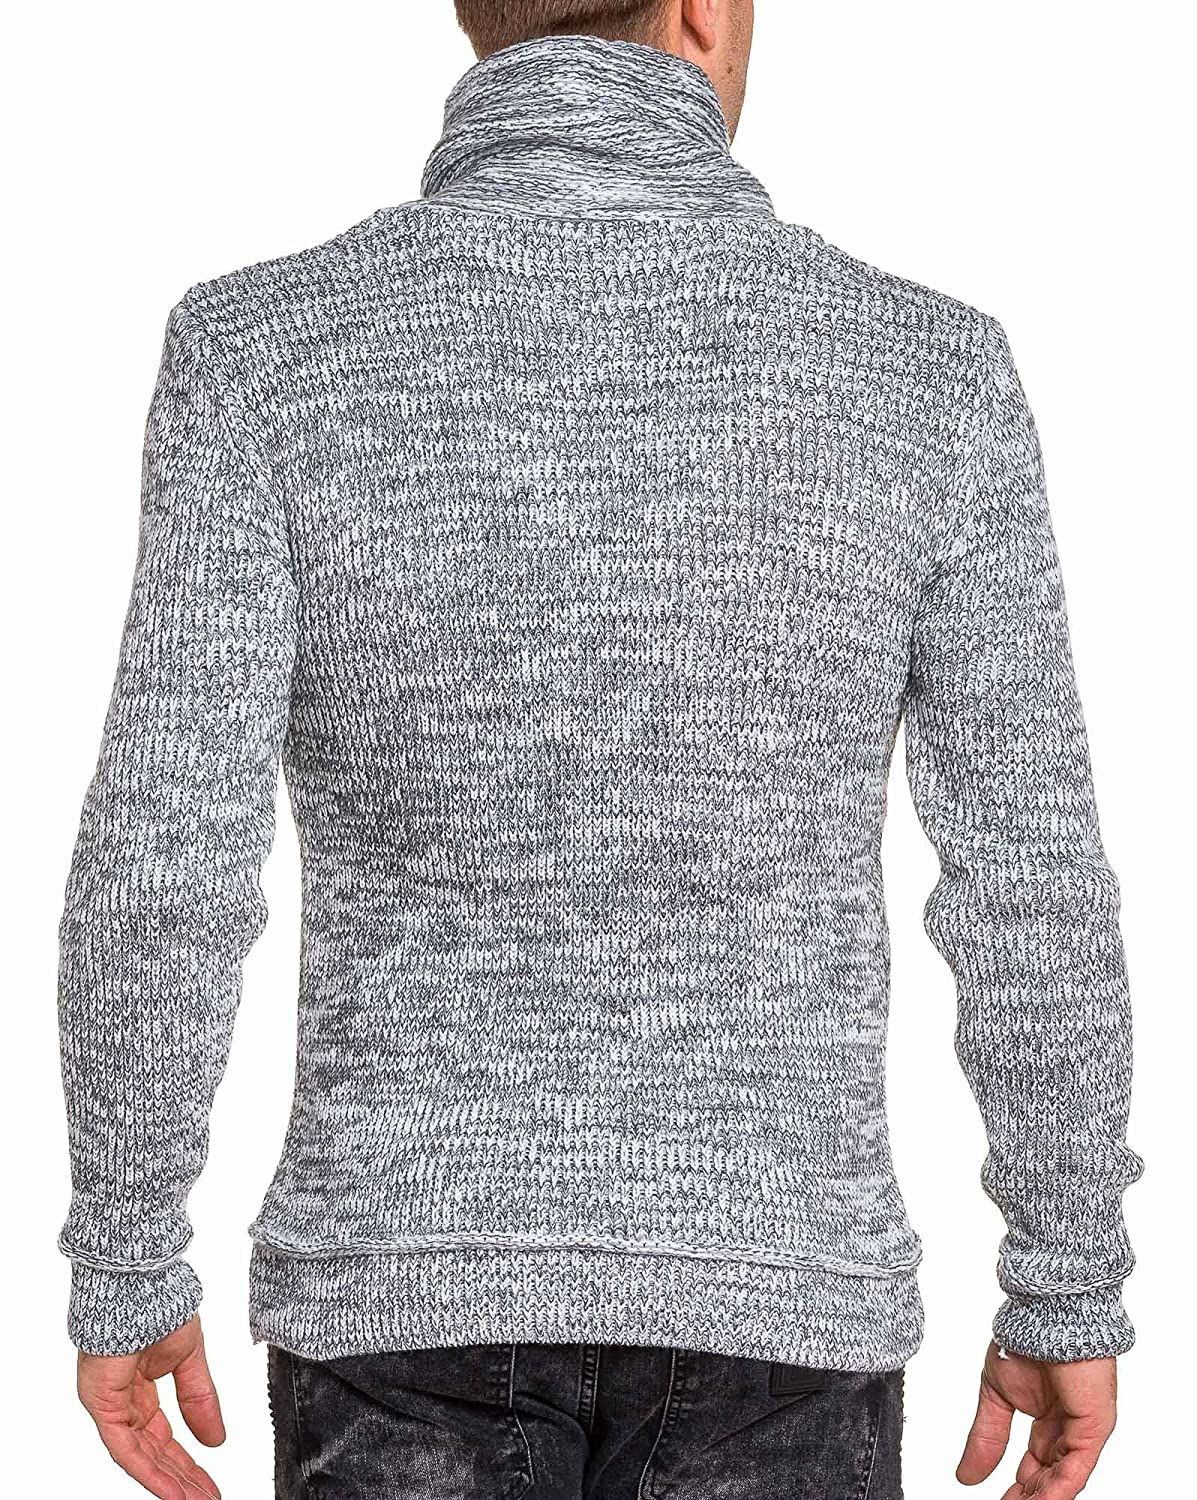 BLZ jeans - ribbed white man zipped sweater shawl collar